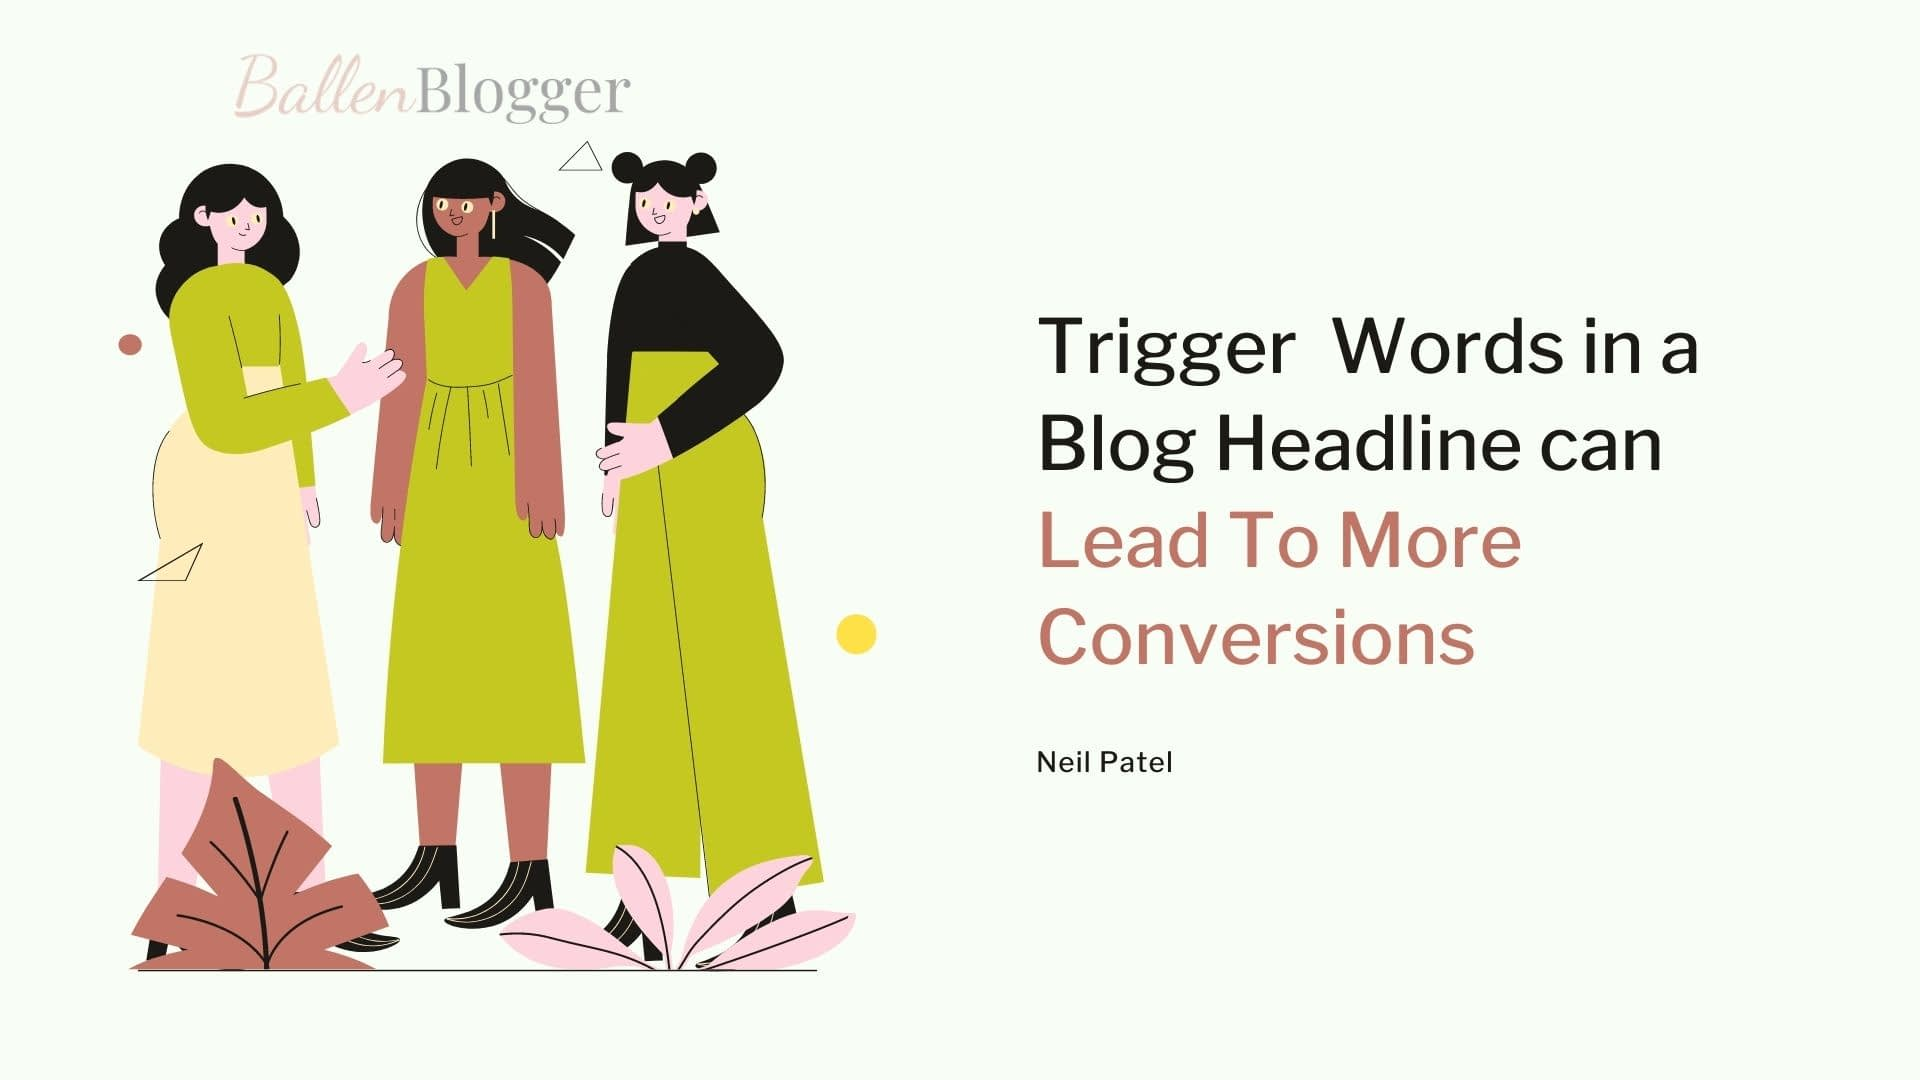 Using trigger words in a blog headline will increase the odds of people clicking on your blog and reading more.